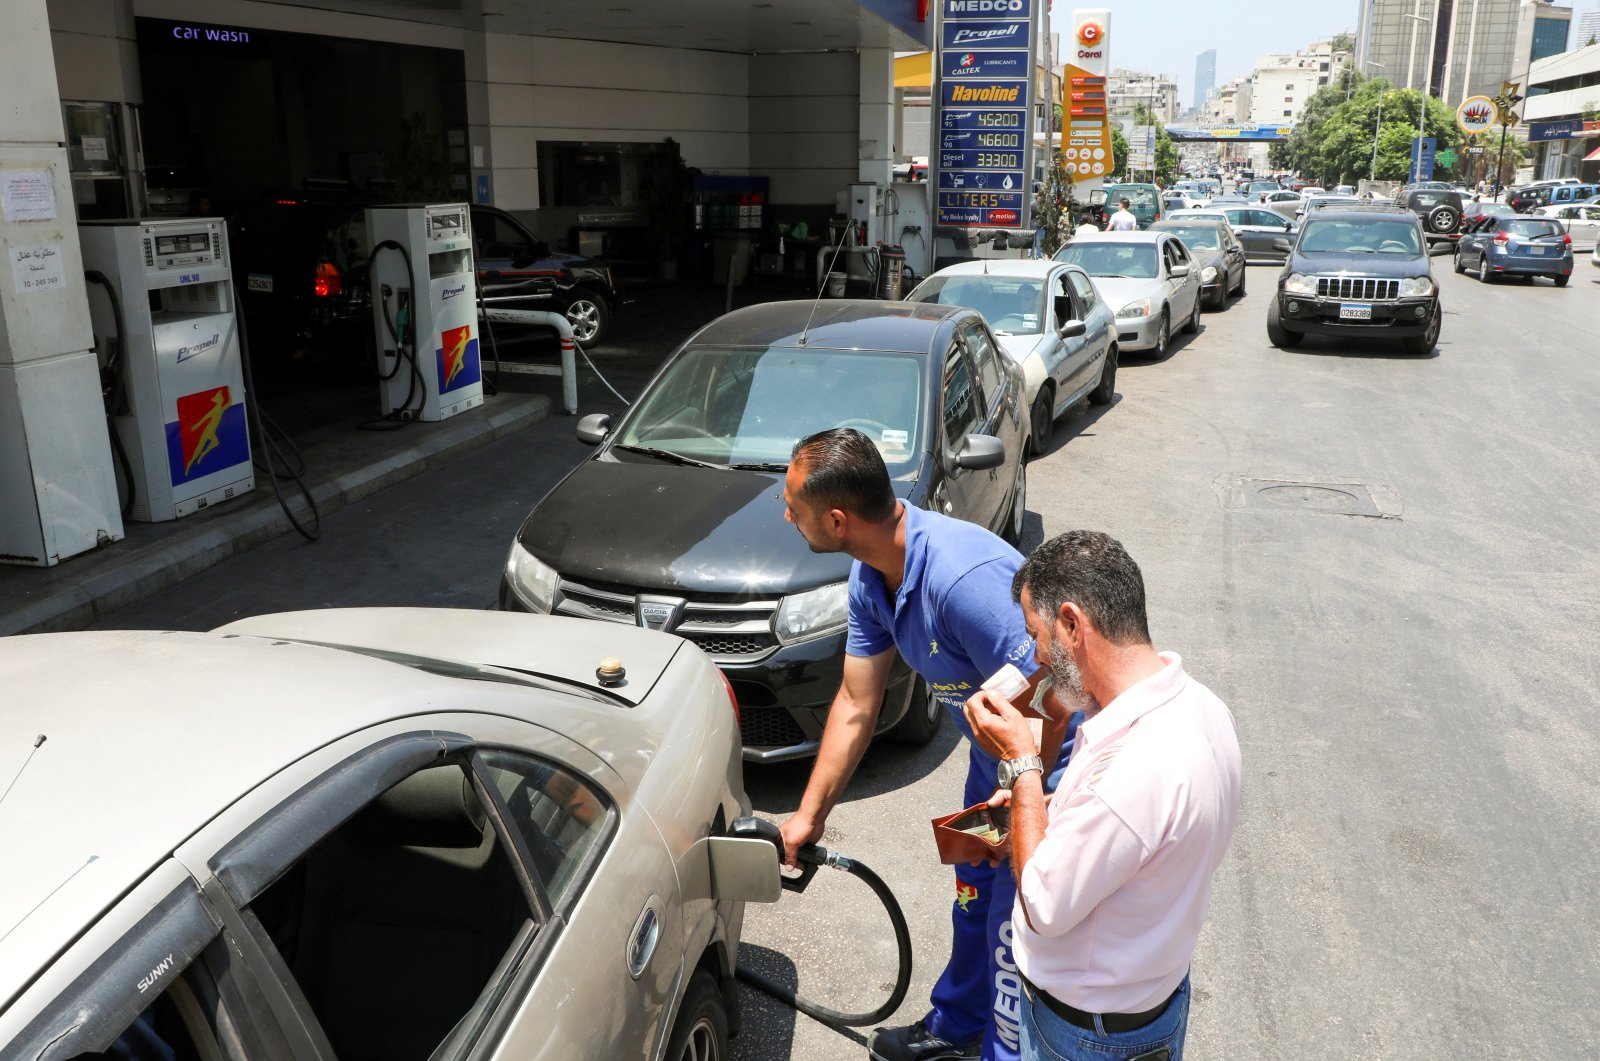 A worker fills up a car with fuel at a gas station in Beirut, Lebanon, June 24, 2021. (Reuters Photo)